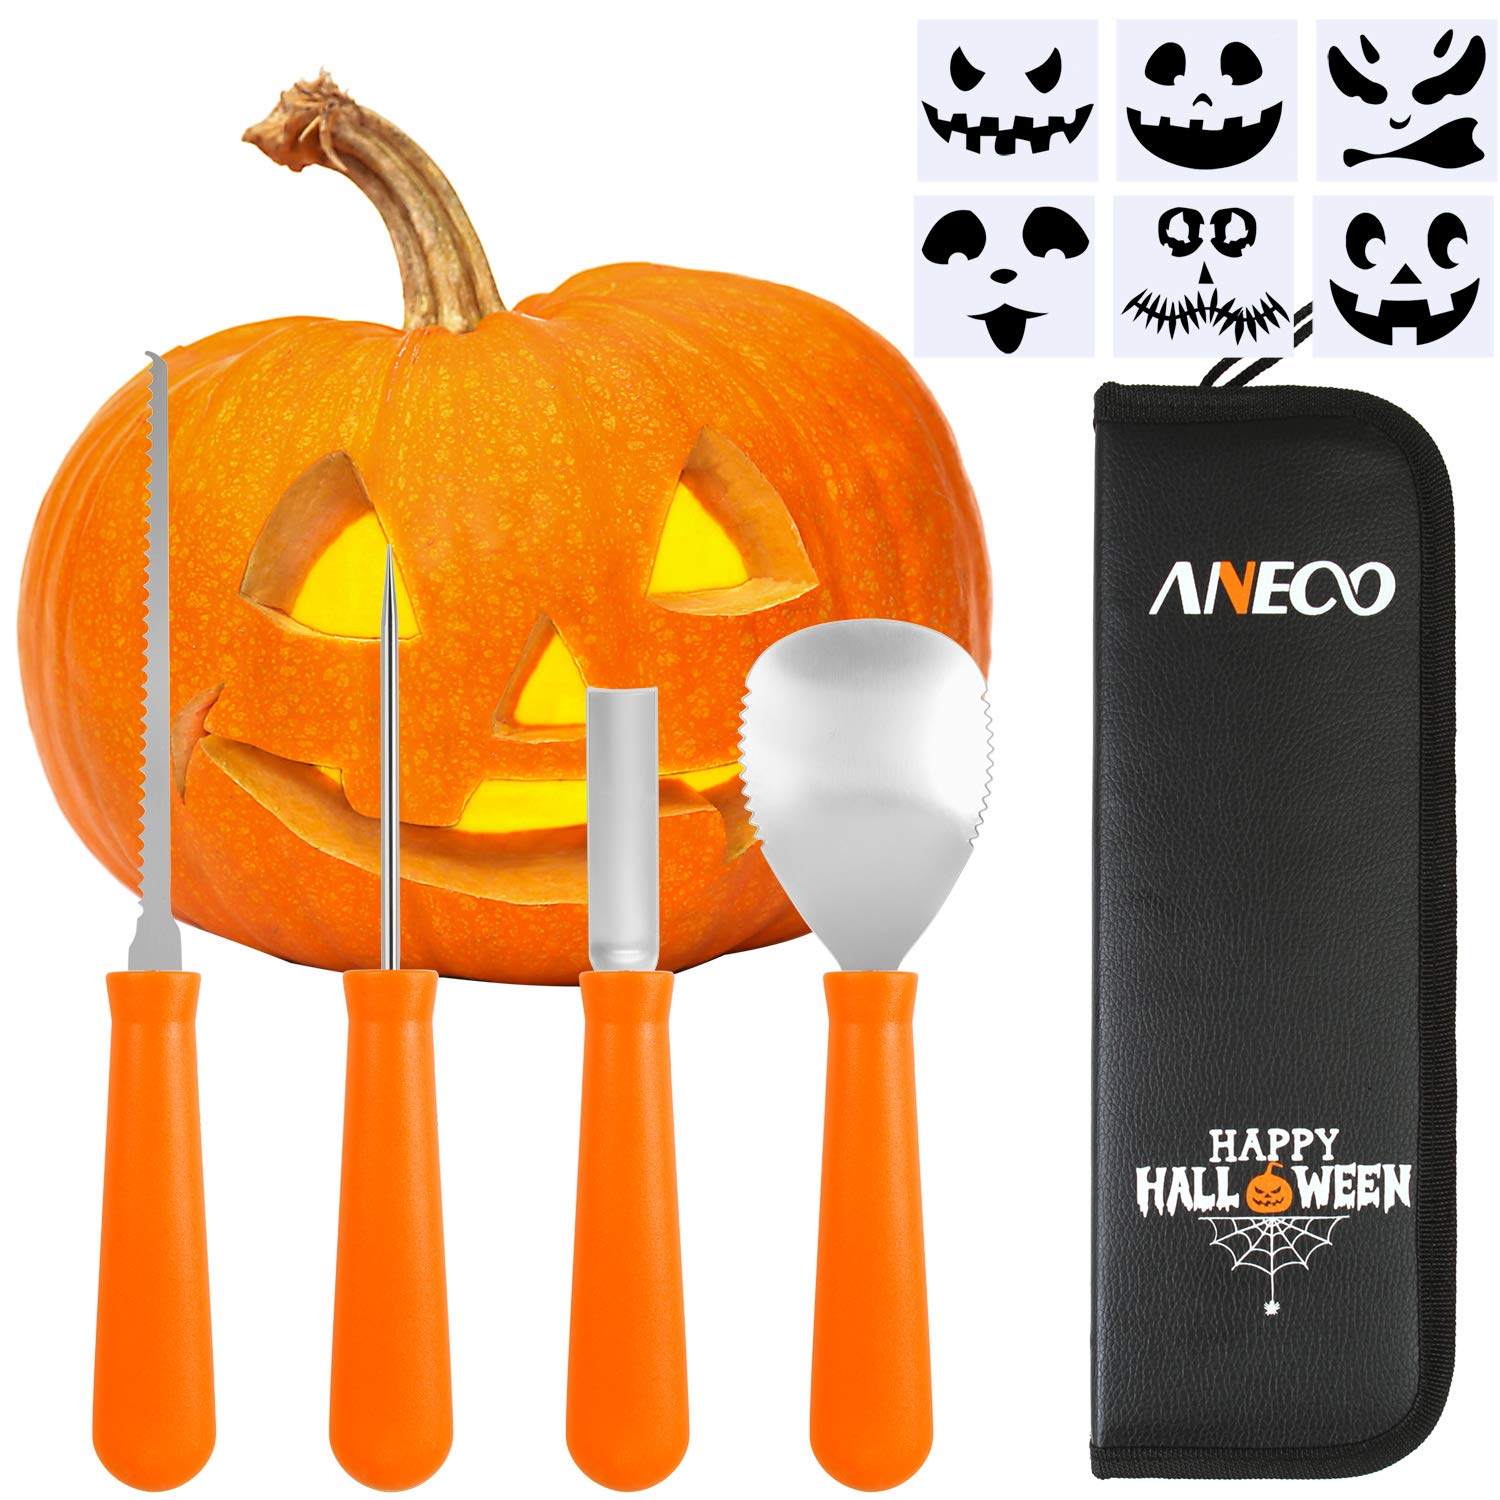 Aneco 4 Pack Halloween Pumpkin Carving Kit Stainless Steel Pumpkin Carving Tools with 6 Pumpkin Carved Stickers and Storage Bag for Halloween Party